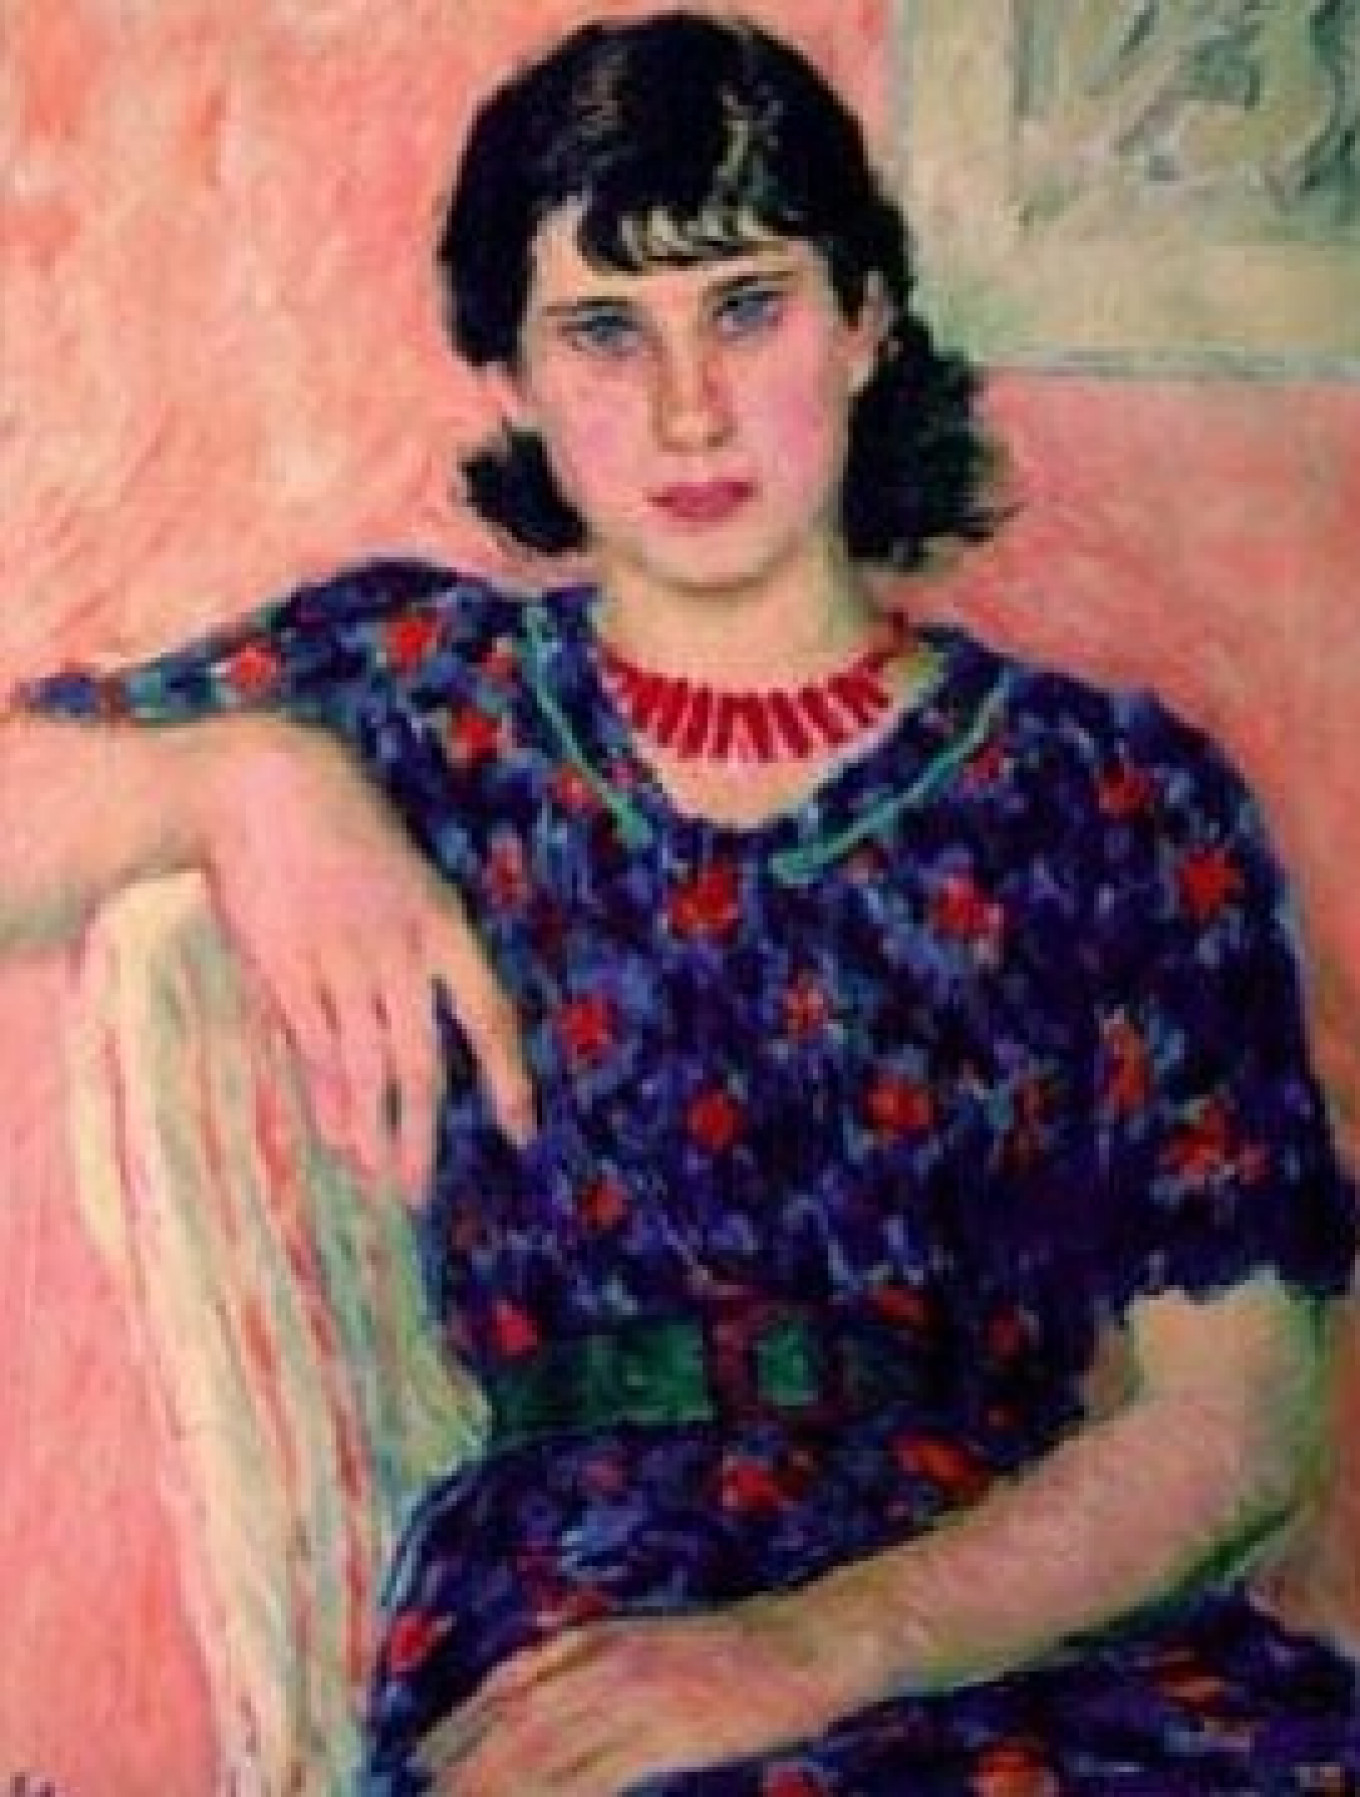 """""""Portrait of a Girl with Bangs,"""" by Vladimir Lebedev (1938) from the collection of Igor Afanasyev Museum of Russian Impressionism"""